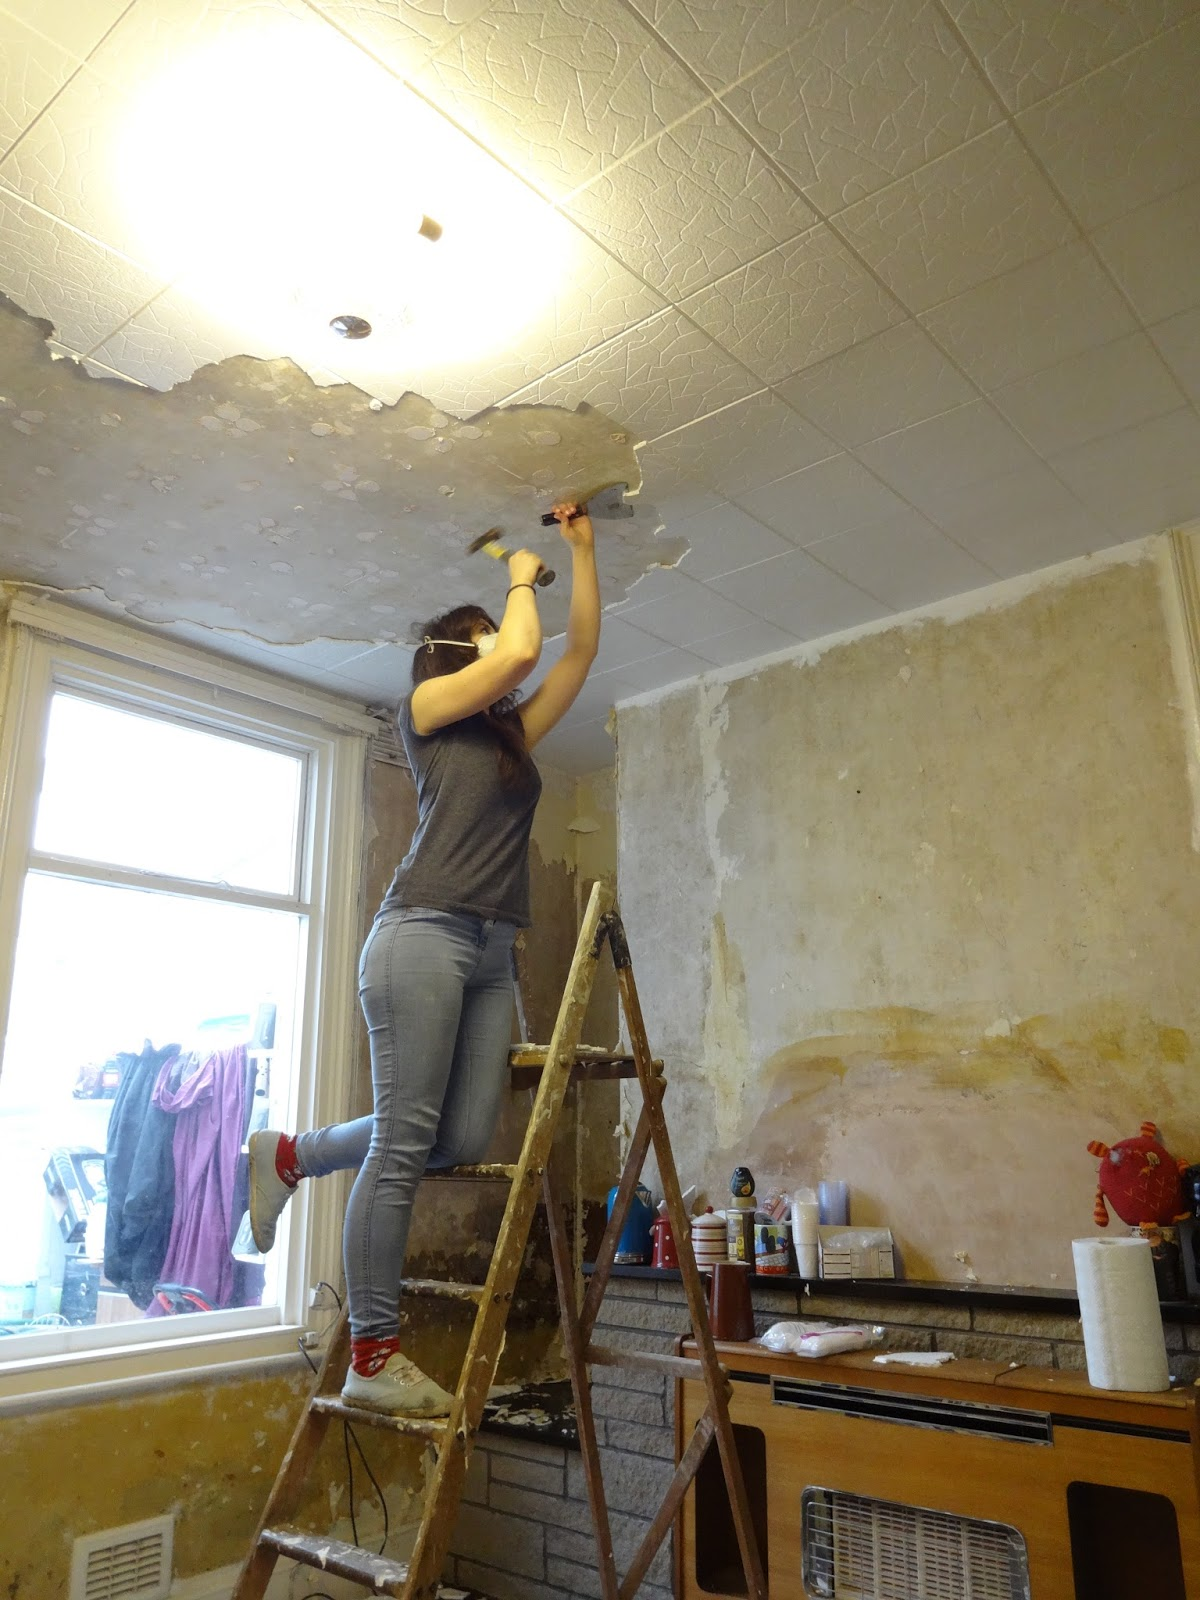 How much does it cost to remove polystyrene ceiling tiles www how much does it cost to remove polystyrene ceiling tiles www dailygadgetfo Choice Image